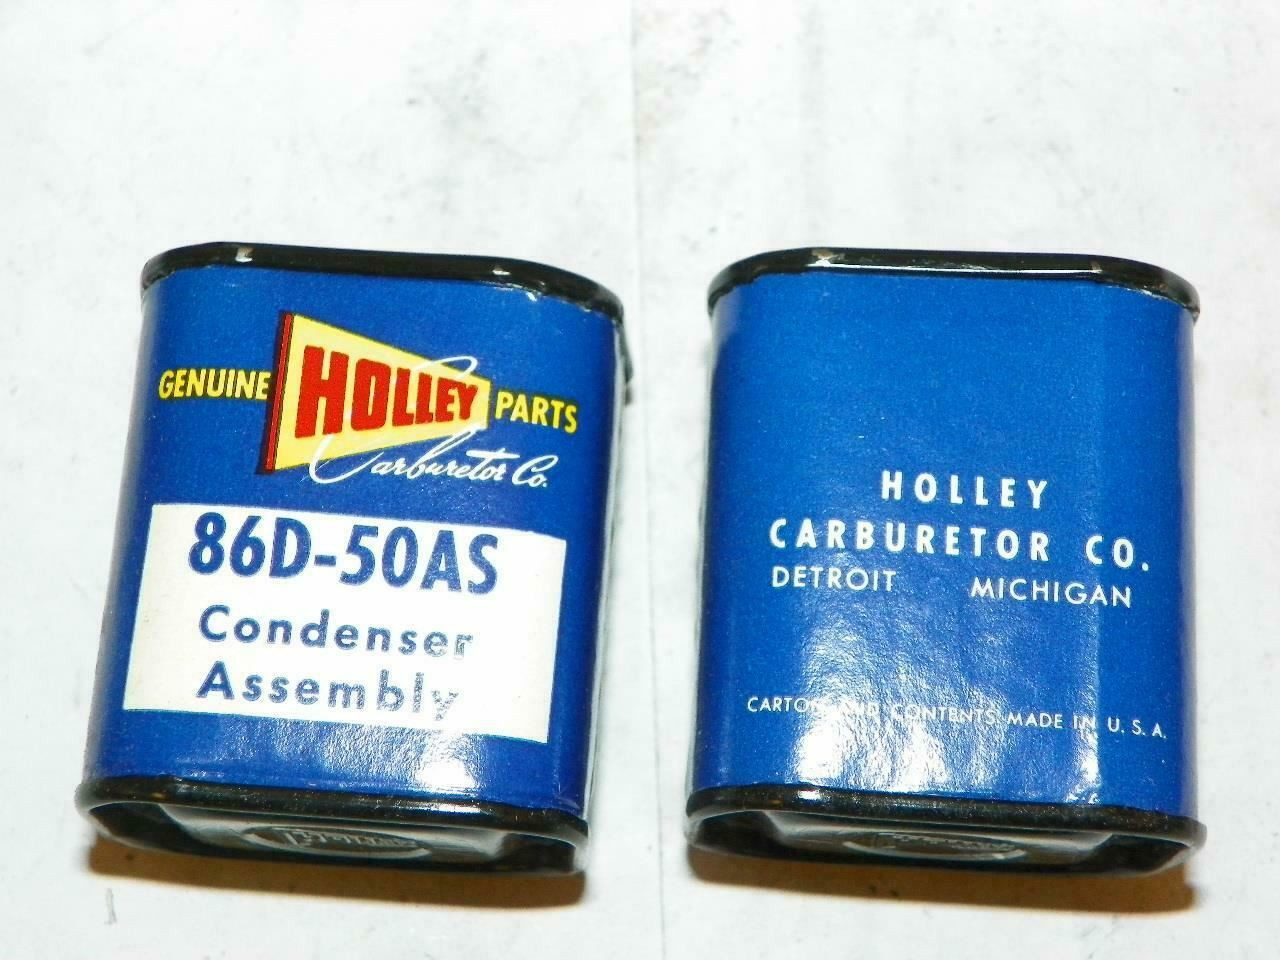 NOS Holley Condensers 2 Each Great Advertising Boxed Each Ford 1952-57 86d-50as